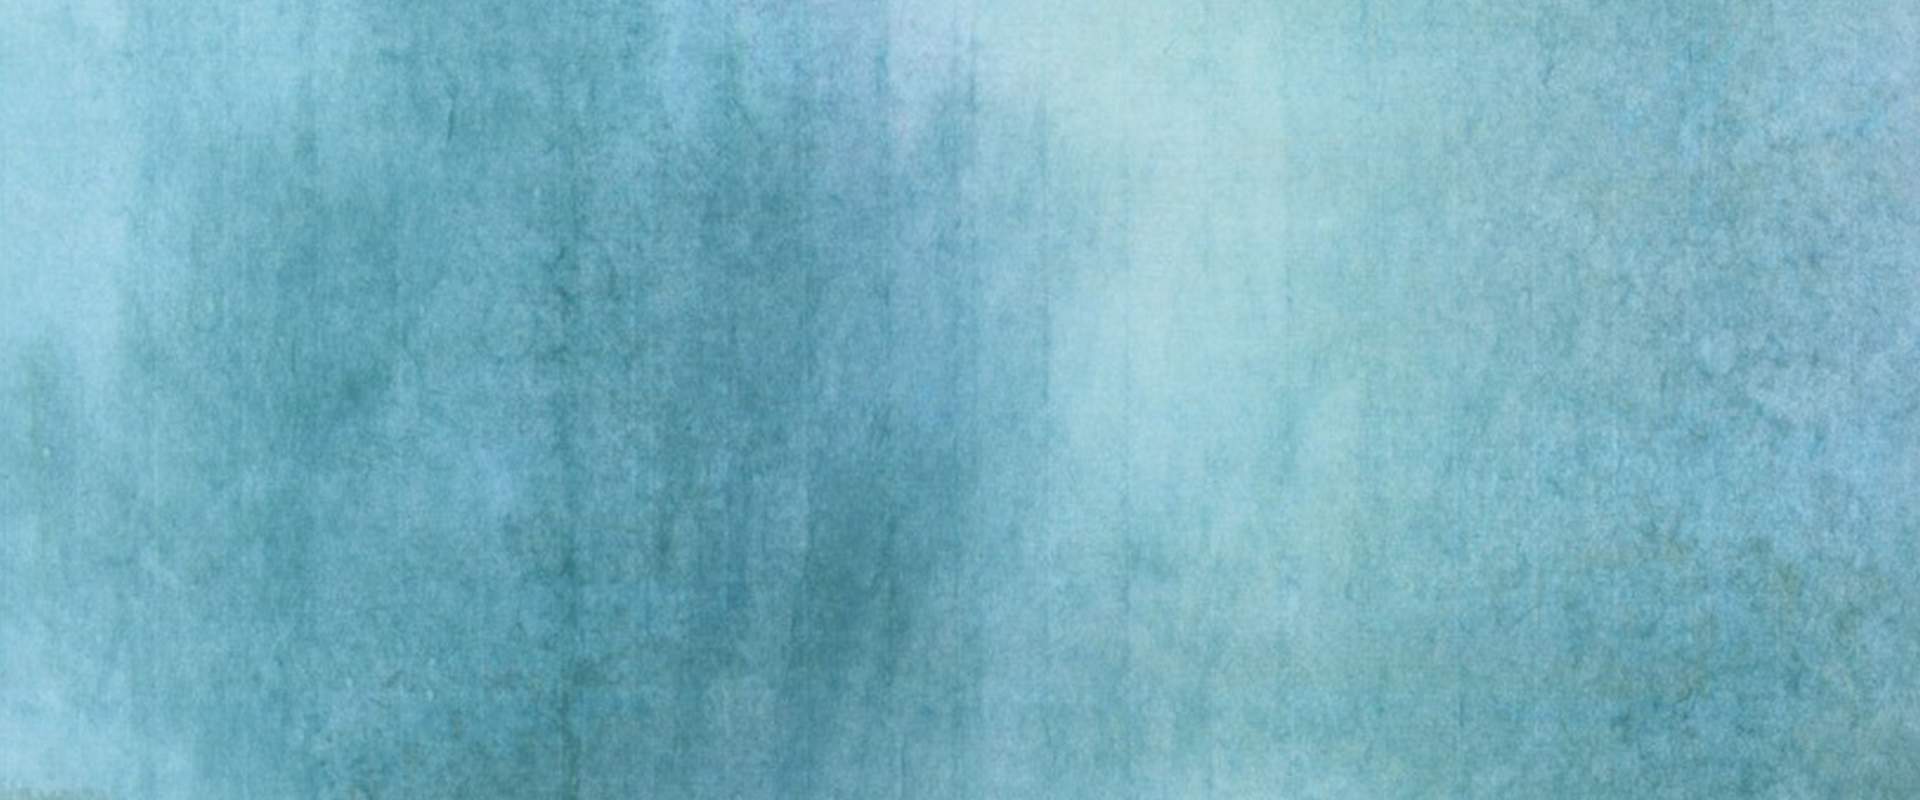 pastel colors of ink texture texture map  elegant  plain